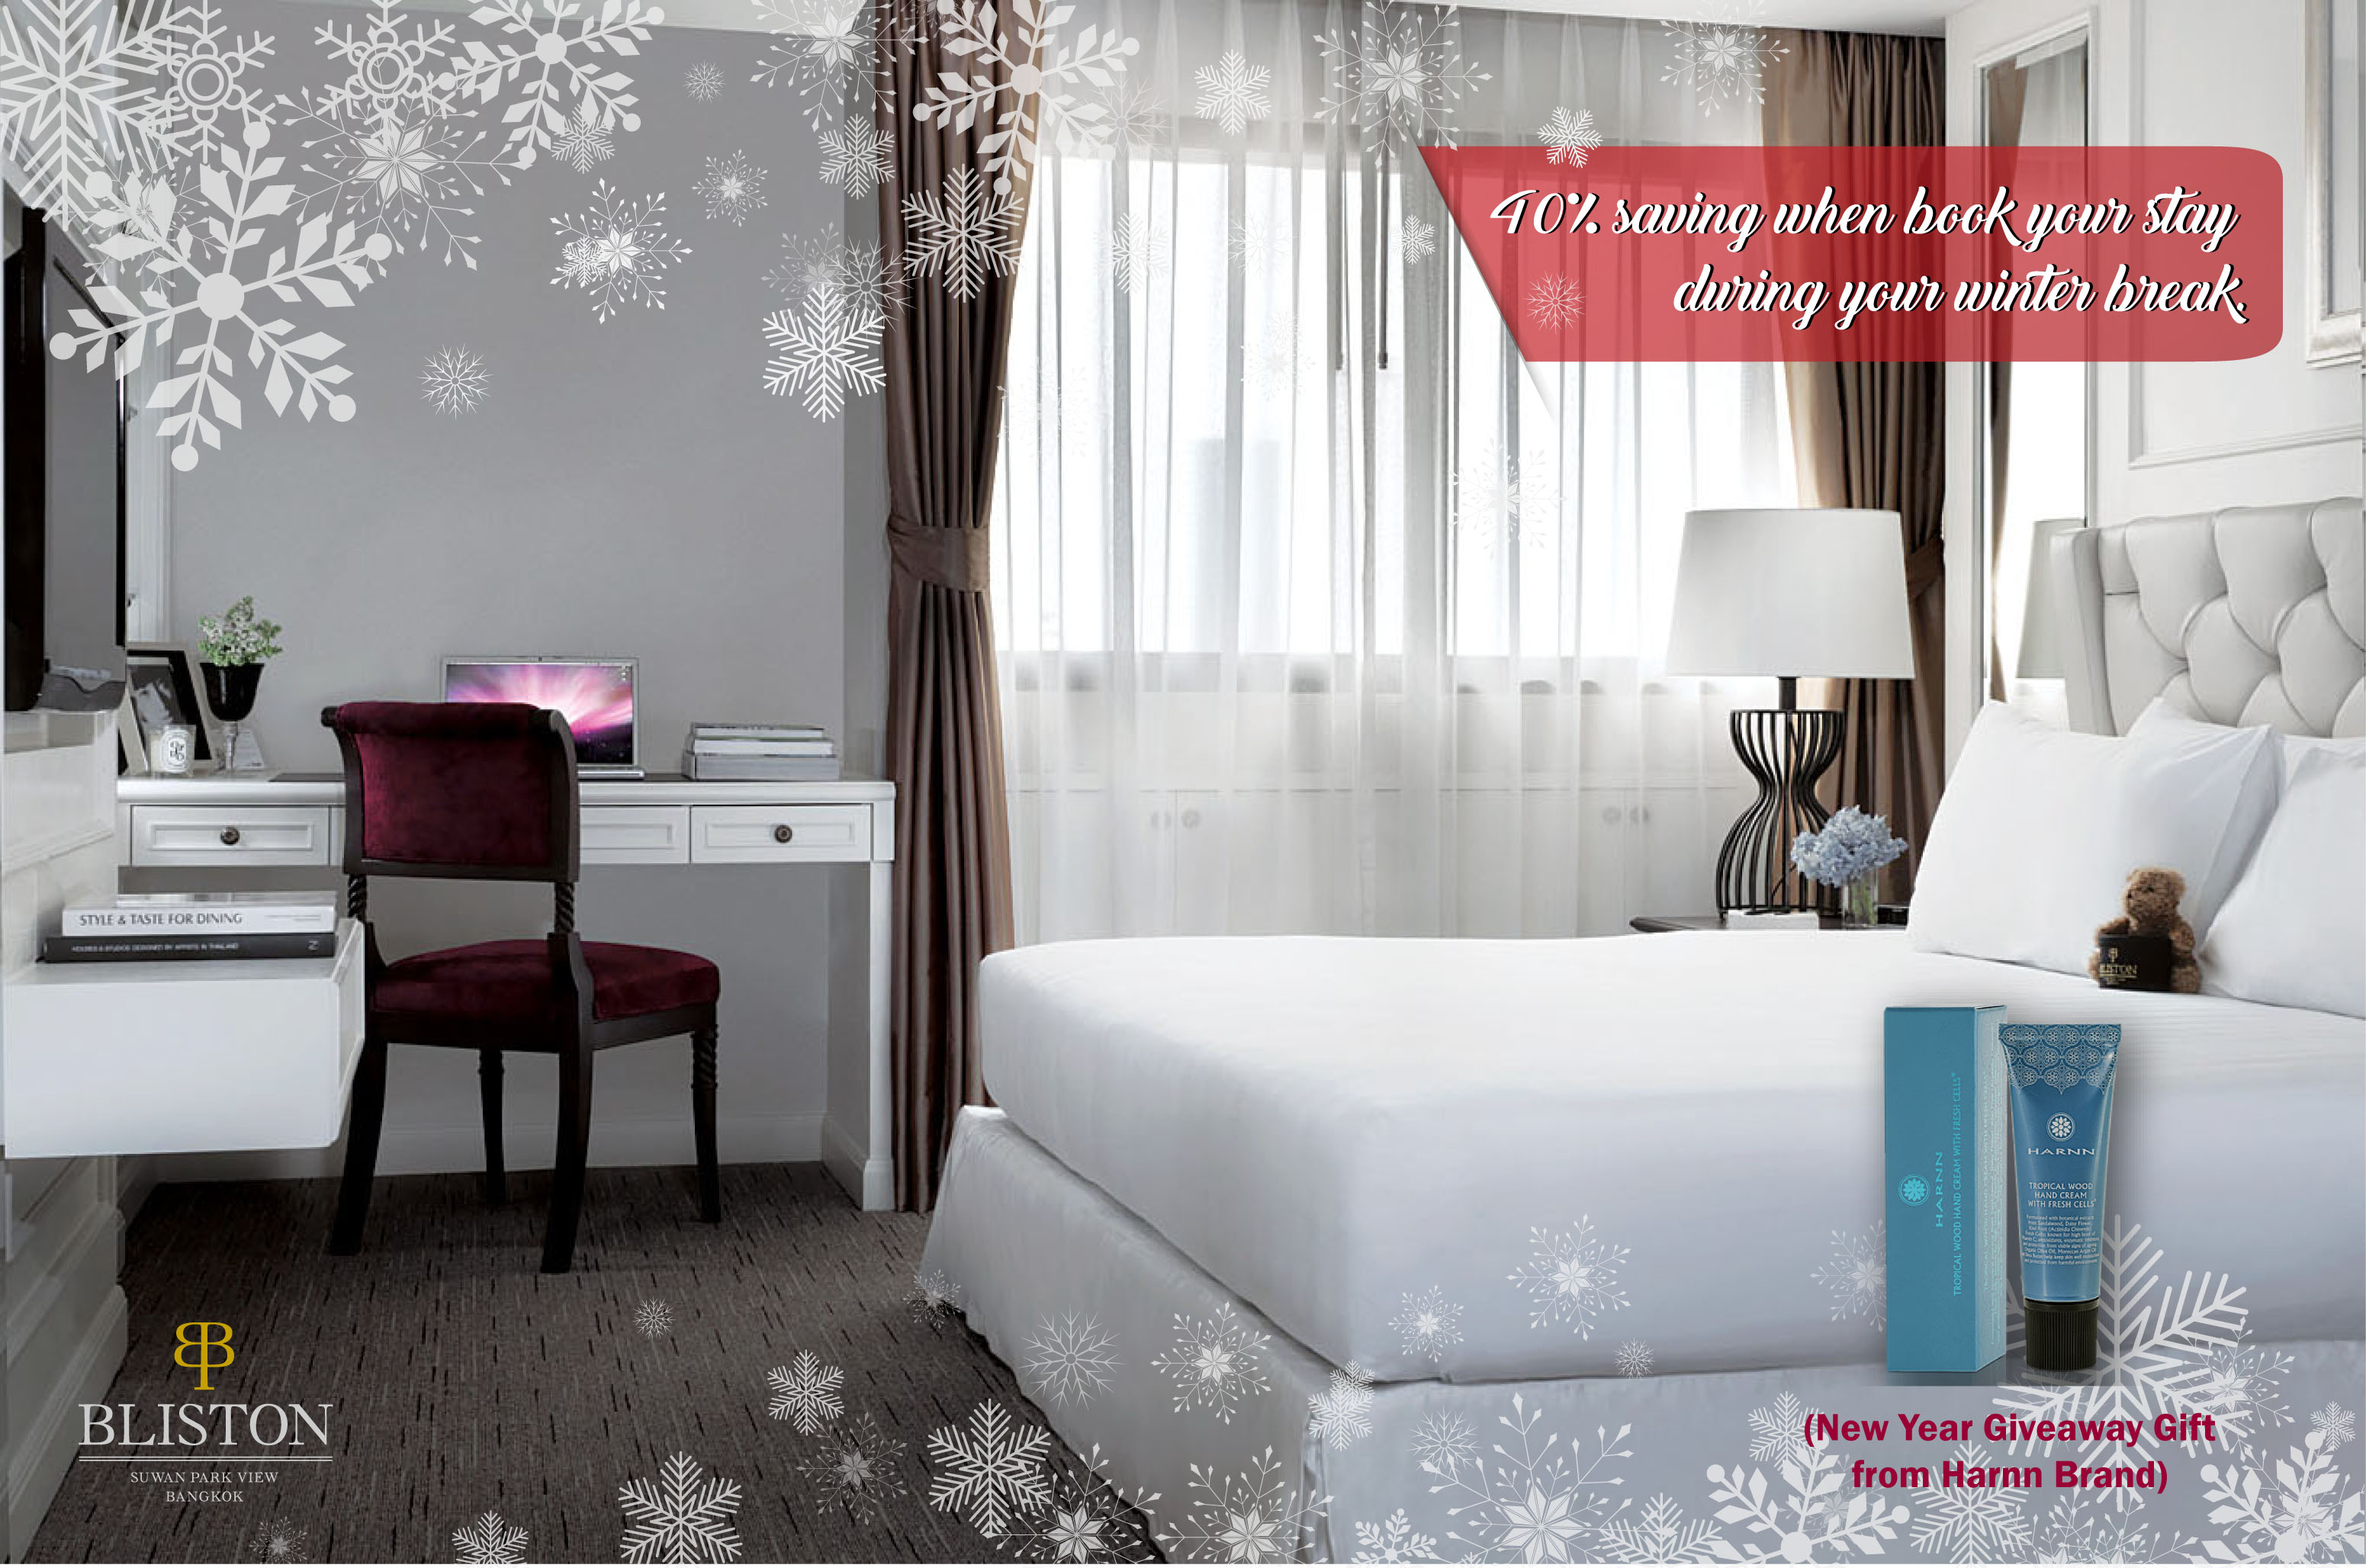 Christmas time (SAVE UP TO 40%)